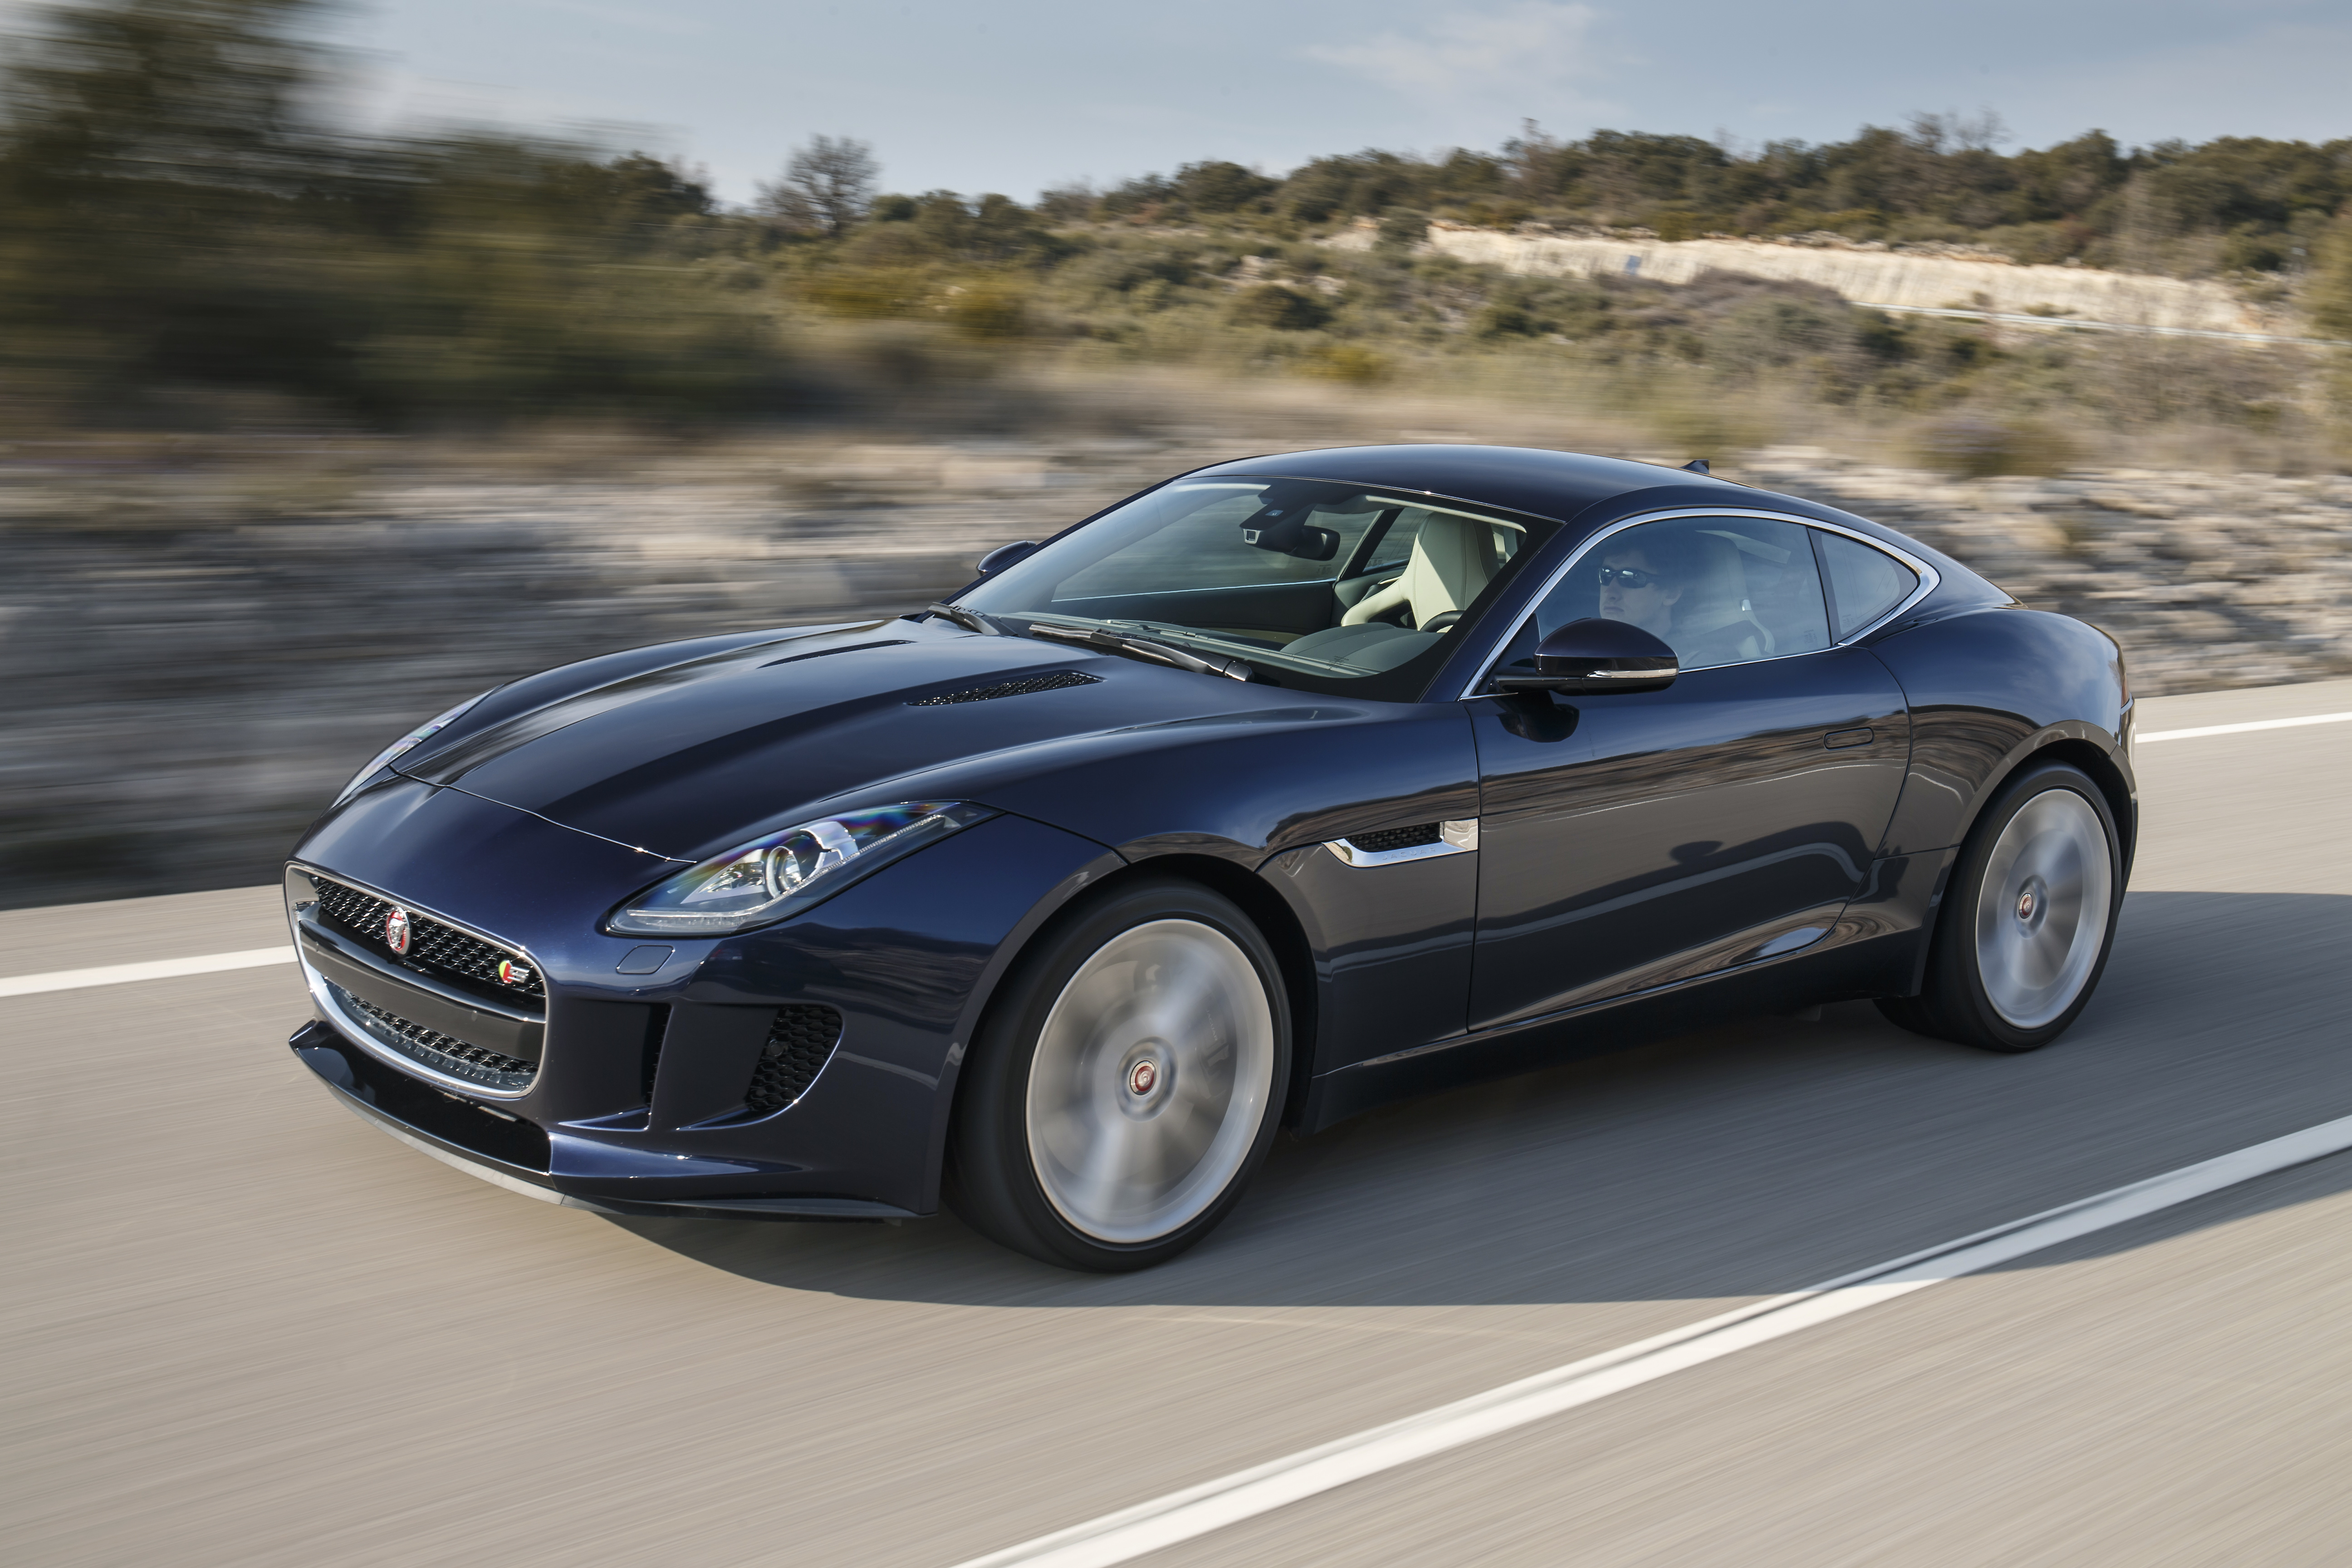 Jaguar F-type #12